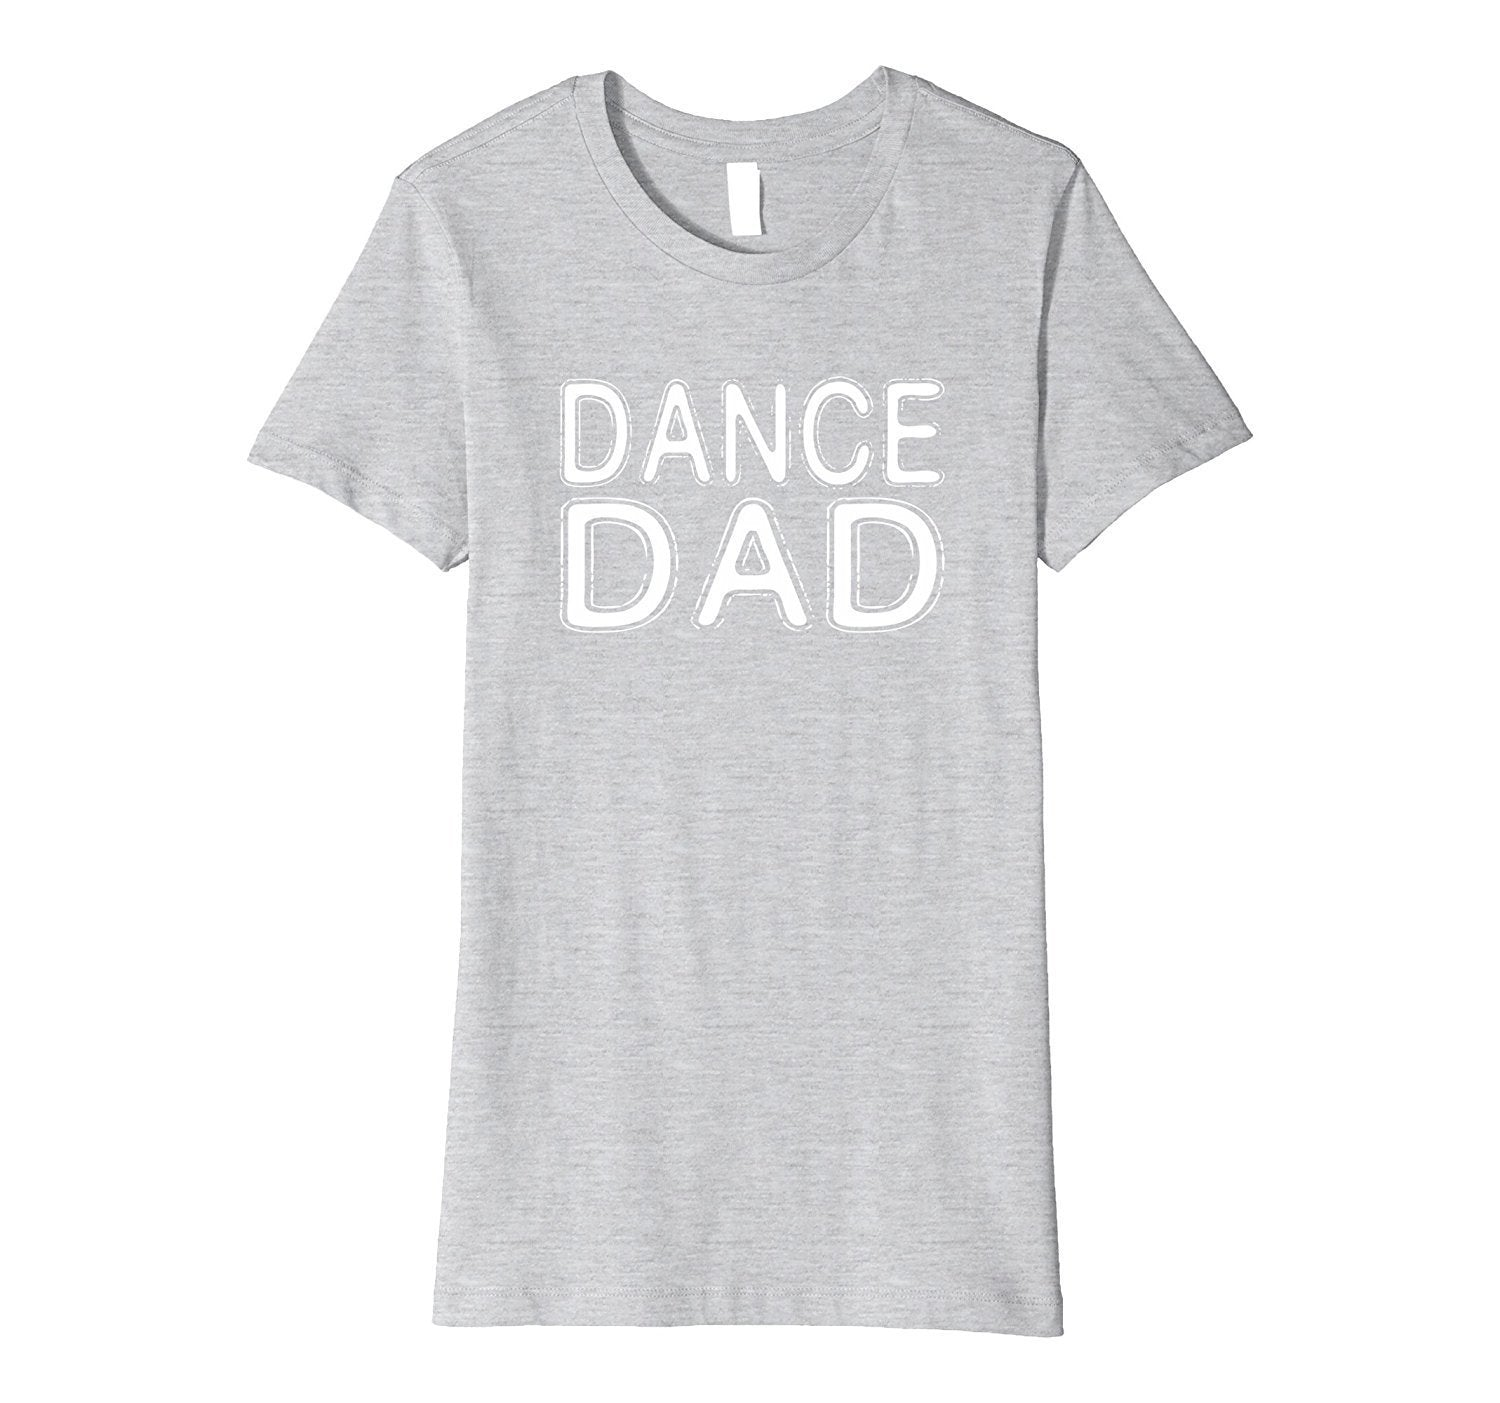 59e759fa Dance Dad T-shirt For Men Great Father Gifts Idea - Pollidos